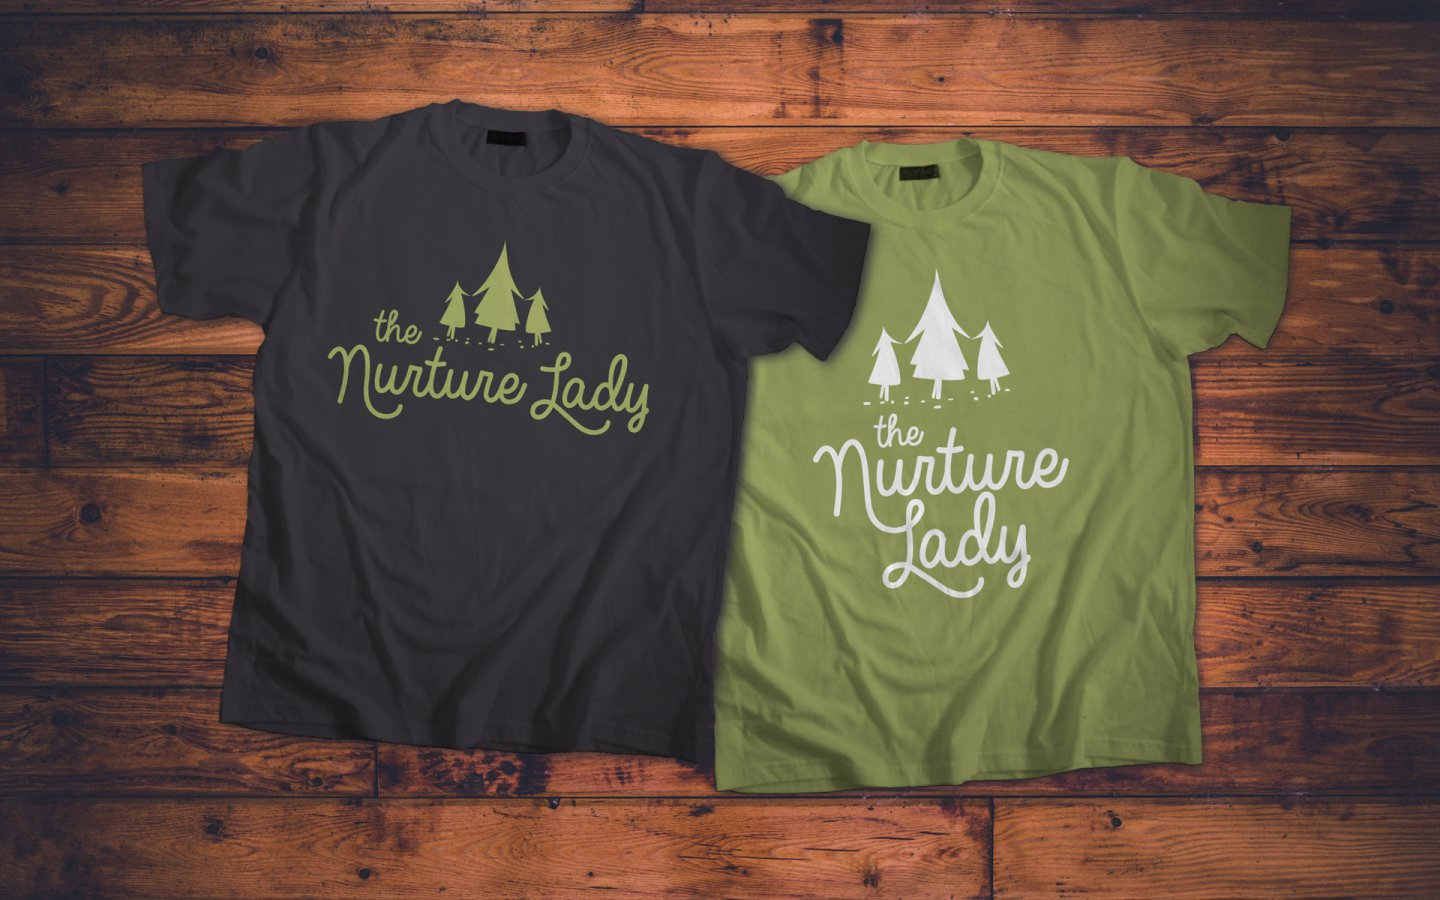 The Nurture Lady, Brand Colours and T-Shirts